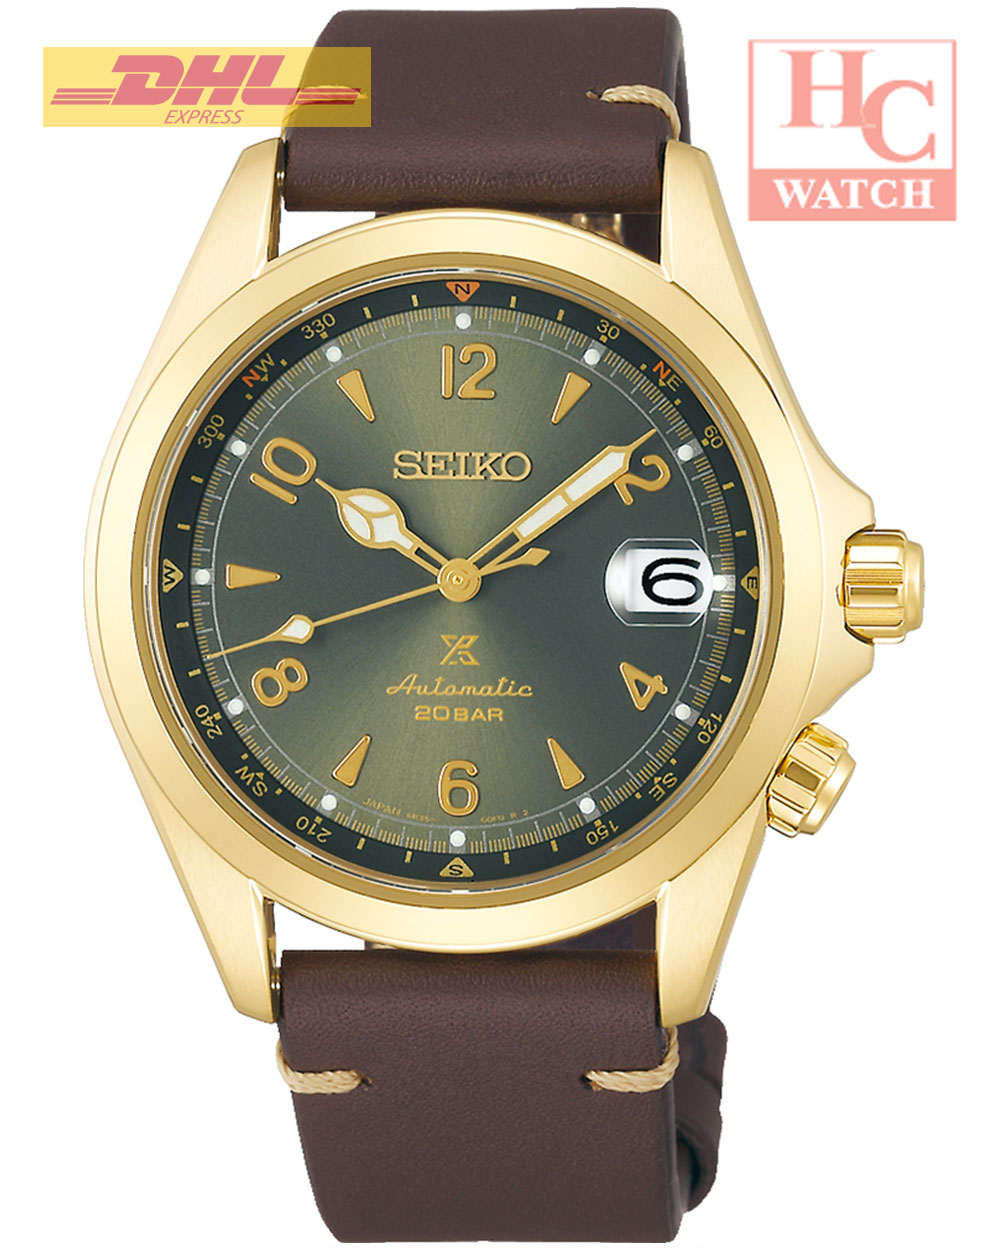 NEW Seiko SPB210J1  Prospex Alpinist Watch